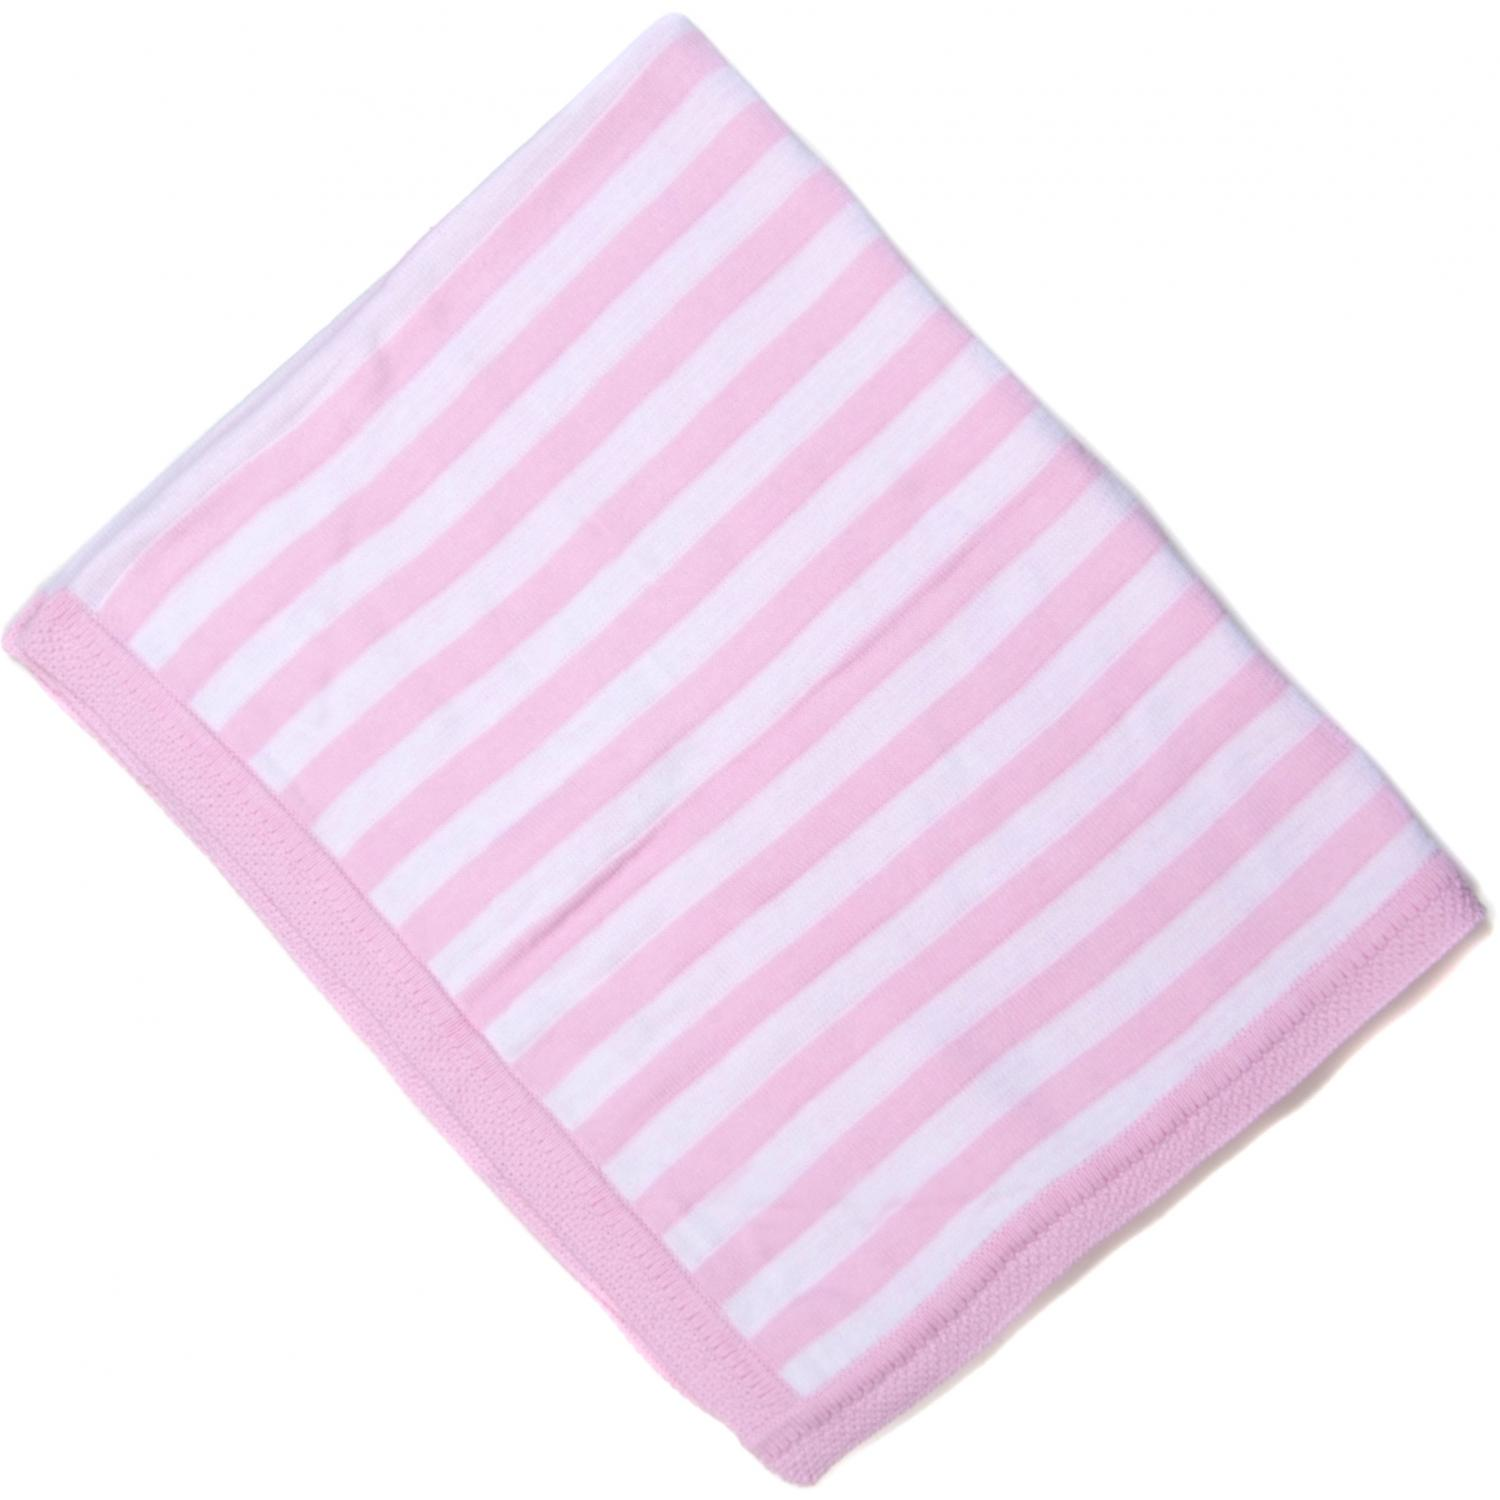 Elegant Baby Striped Baby Blanket - Pink